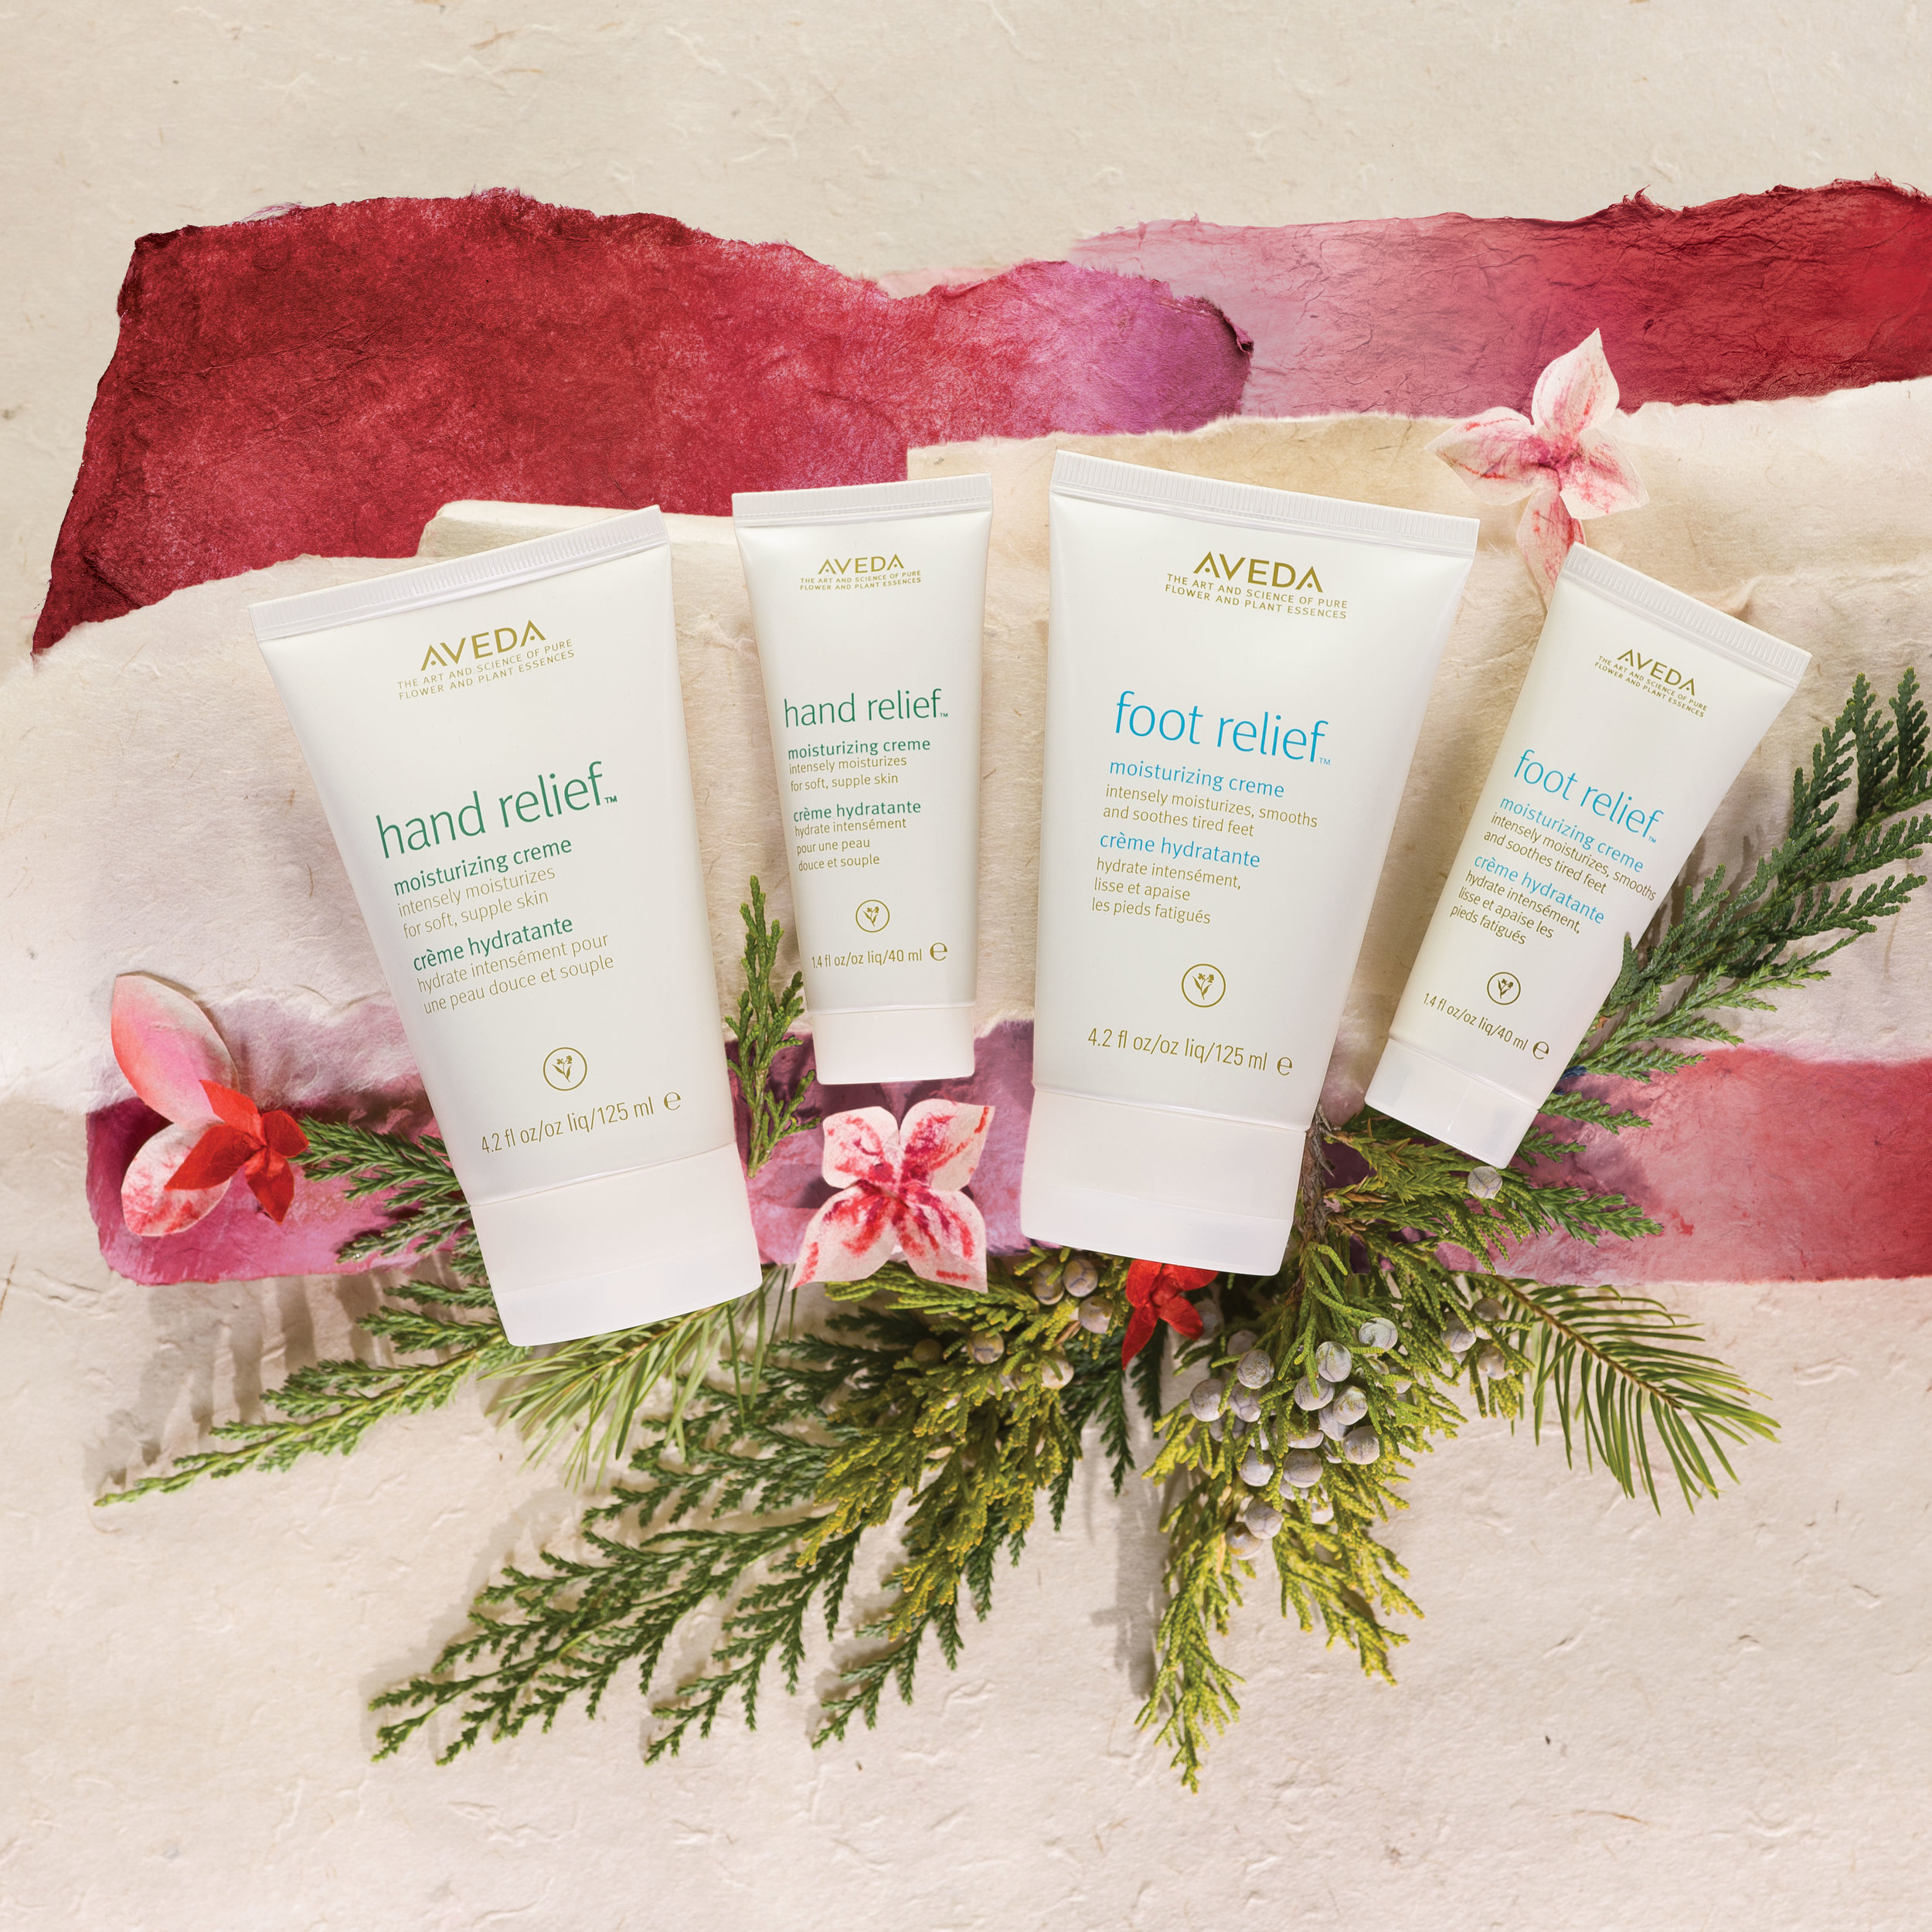 The Gift of Pure Relief: $52.50